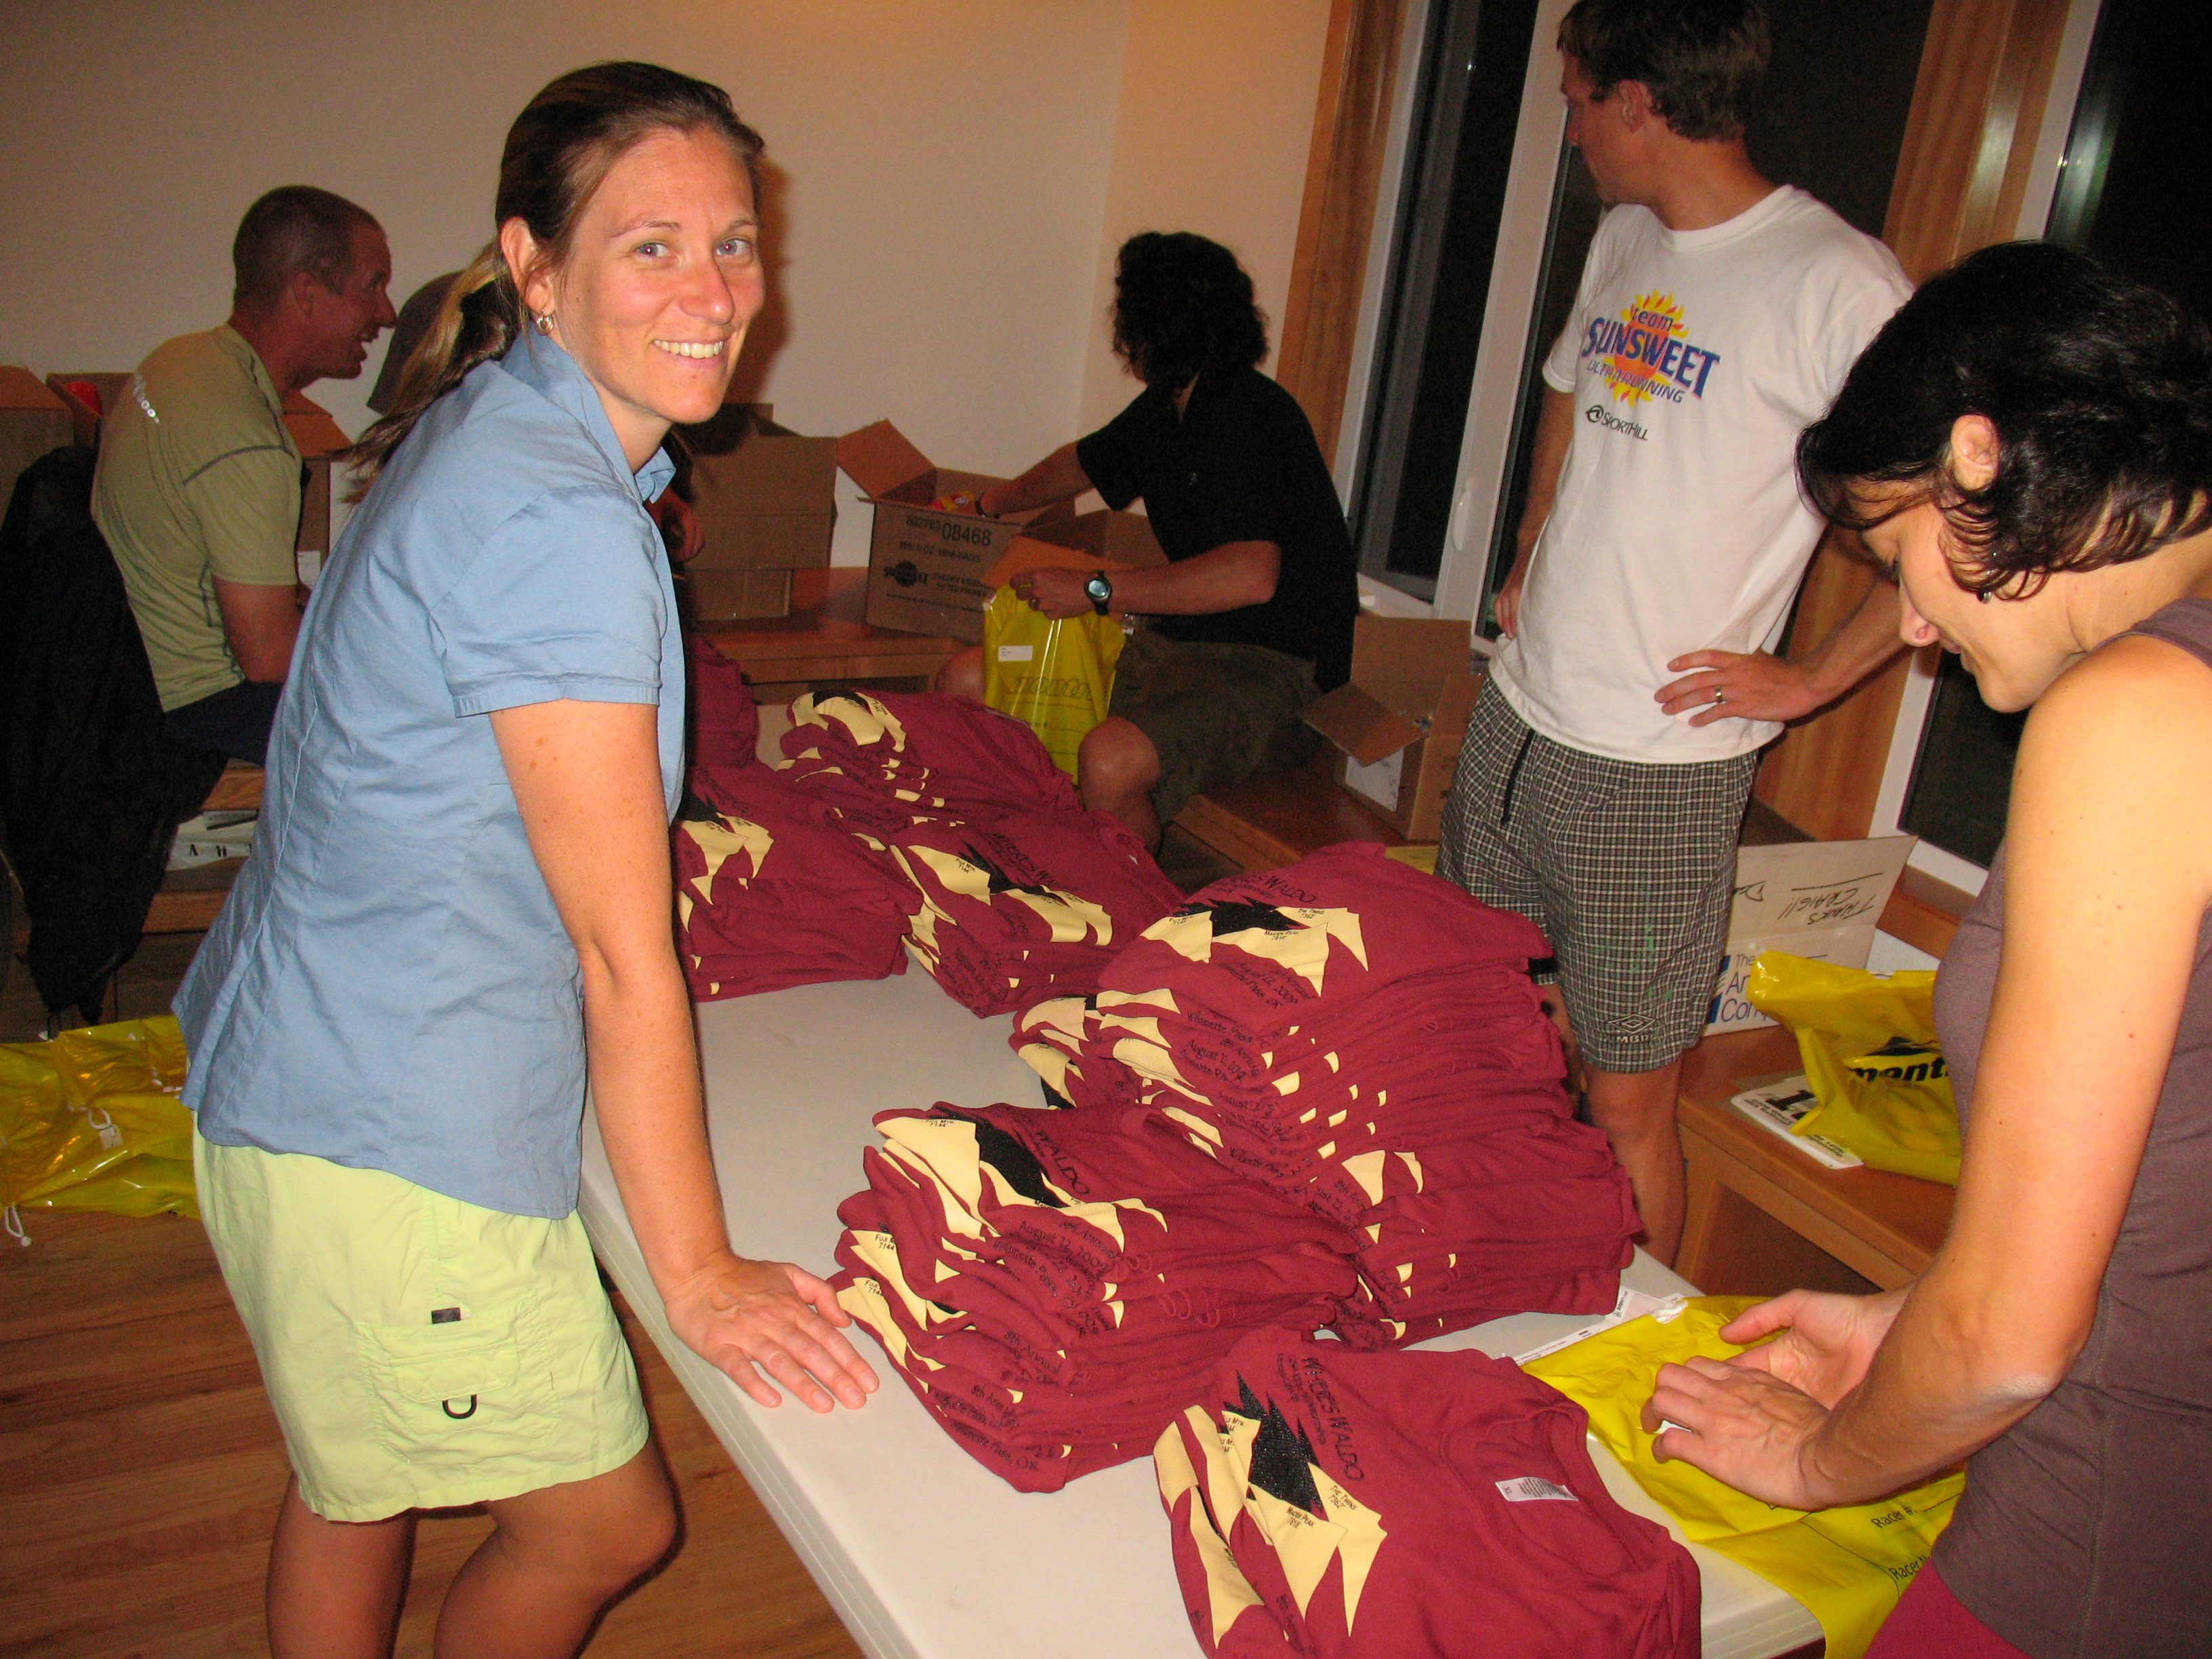 Hannah Shallice and others folding race shirts